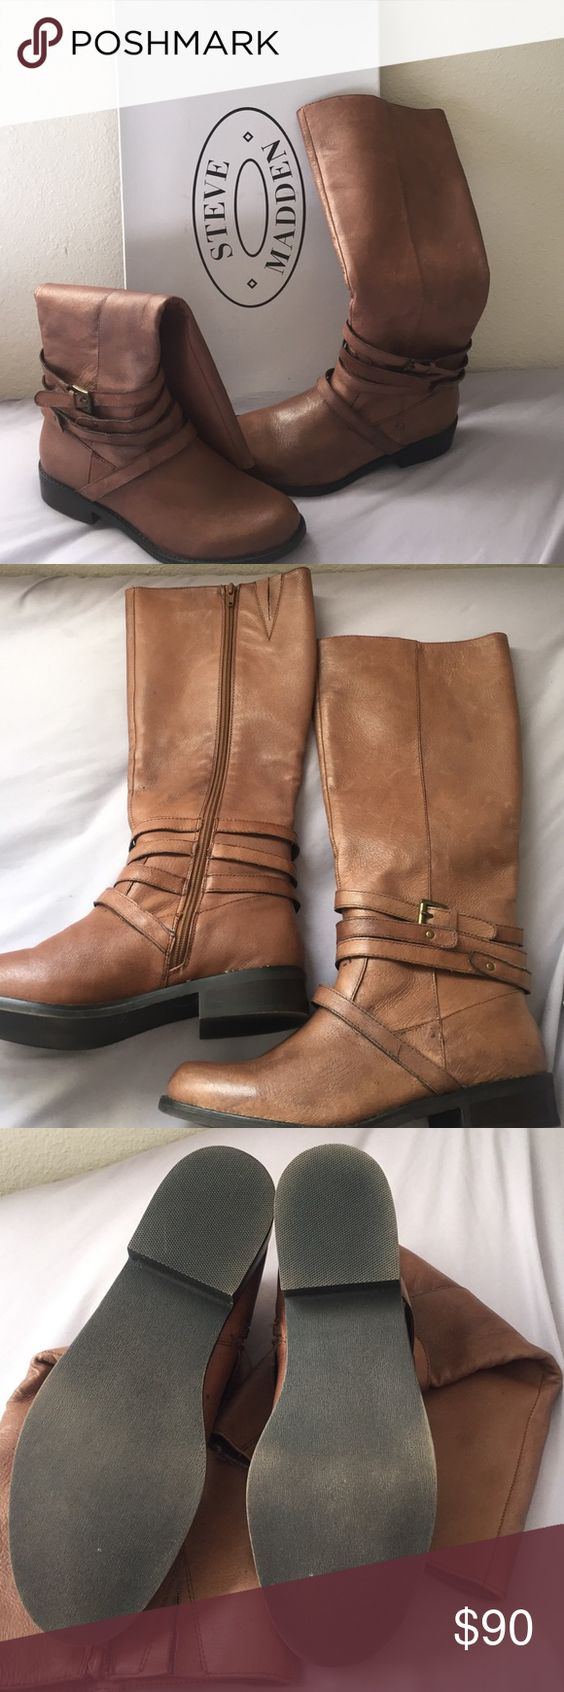 Steve Madden genuine leather ayva brown boots New in box, never worn before Steve Madden ayva boots come just below the knee on me! Willing to trade Steve Madden Shoes